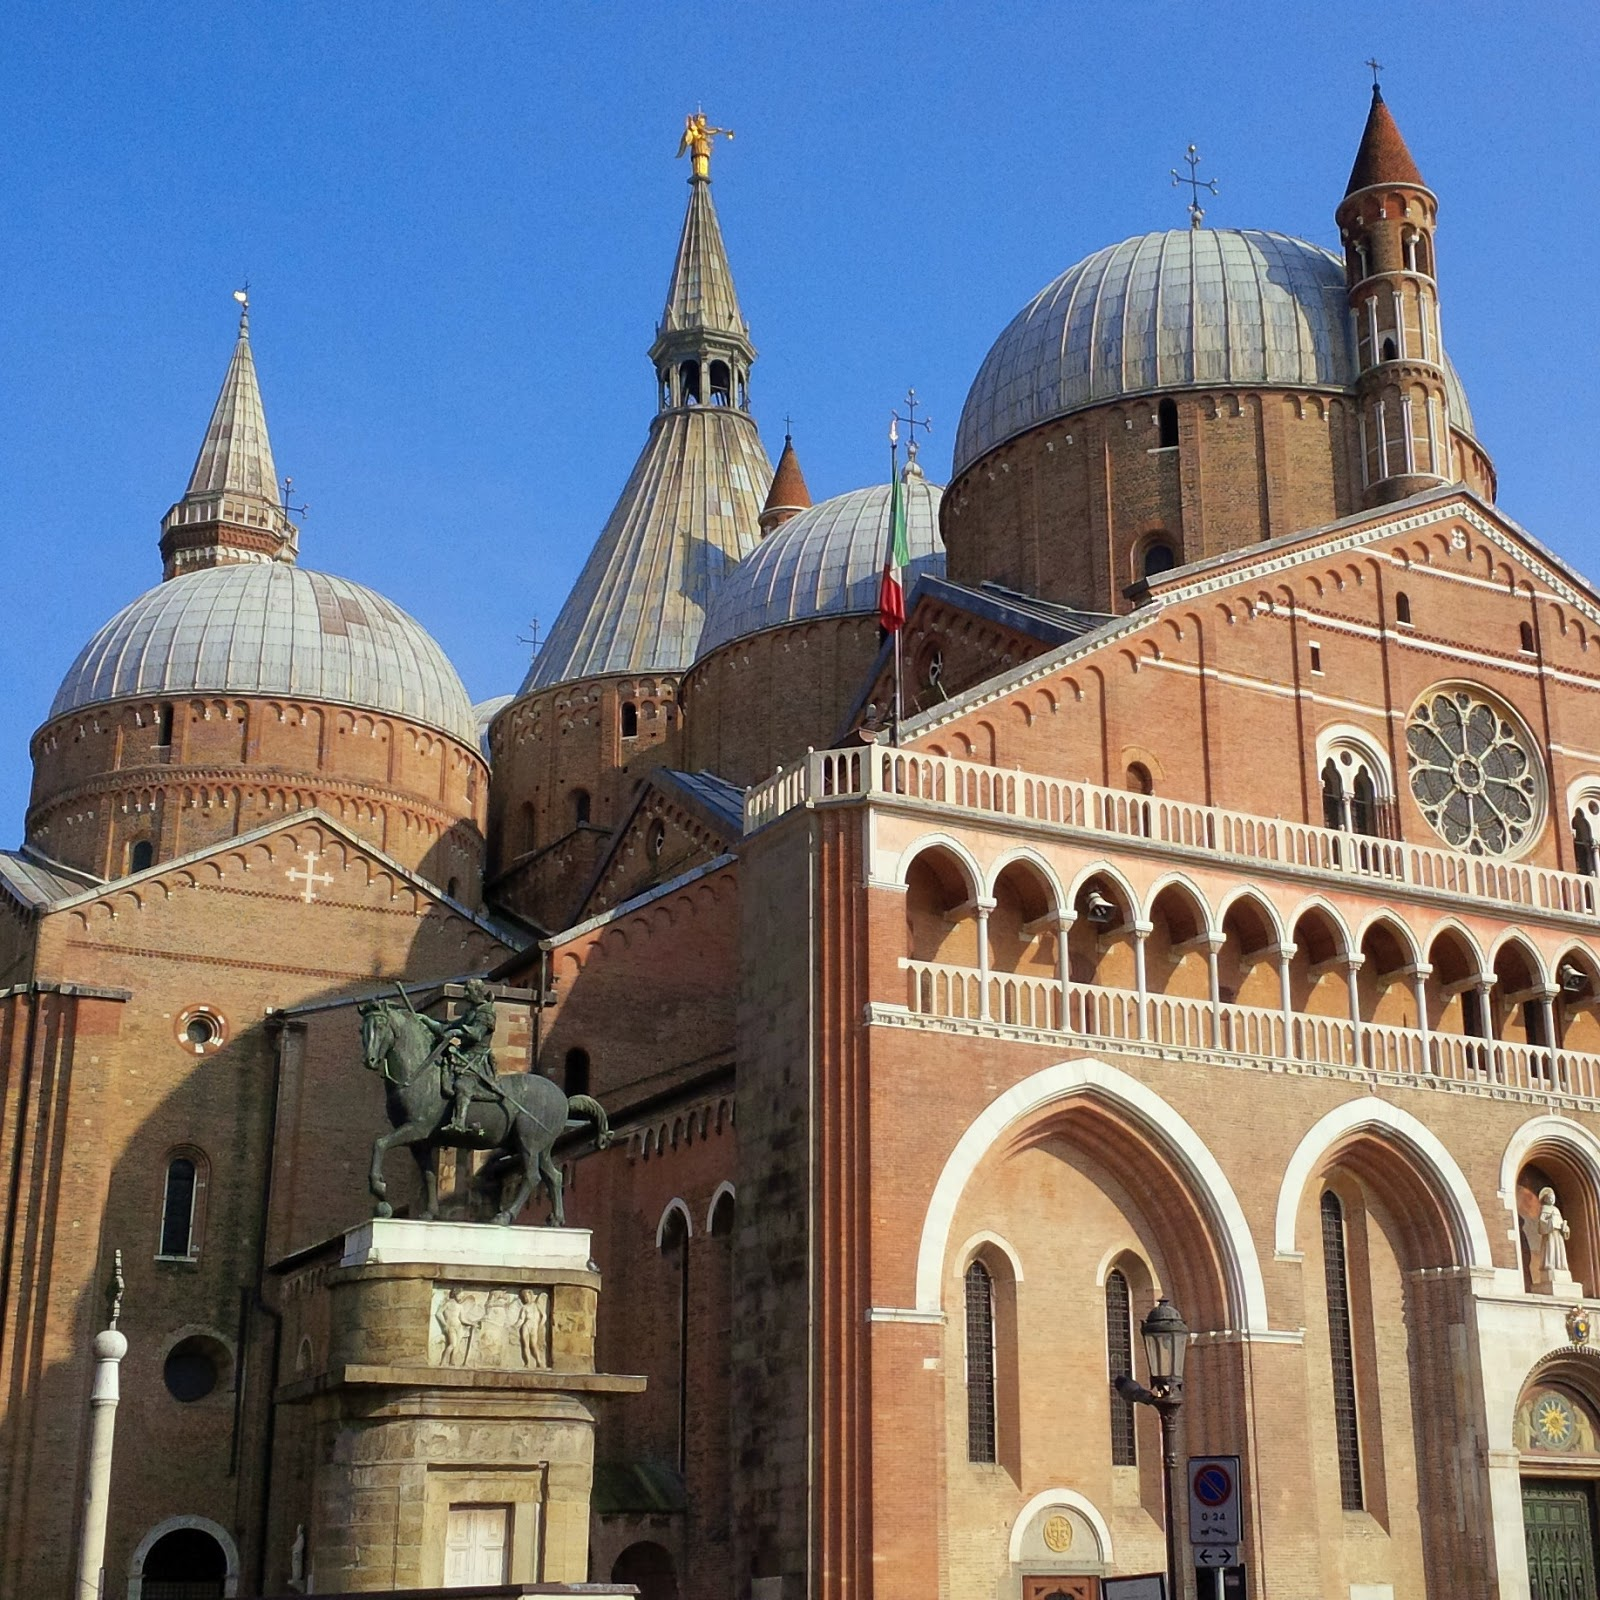 St. Anthony's Basilica in Padua with a statue by Donatello in front of it